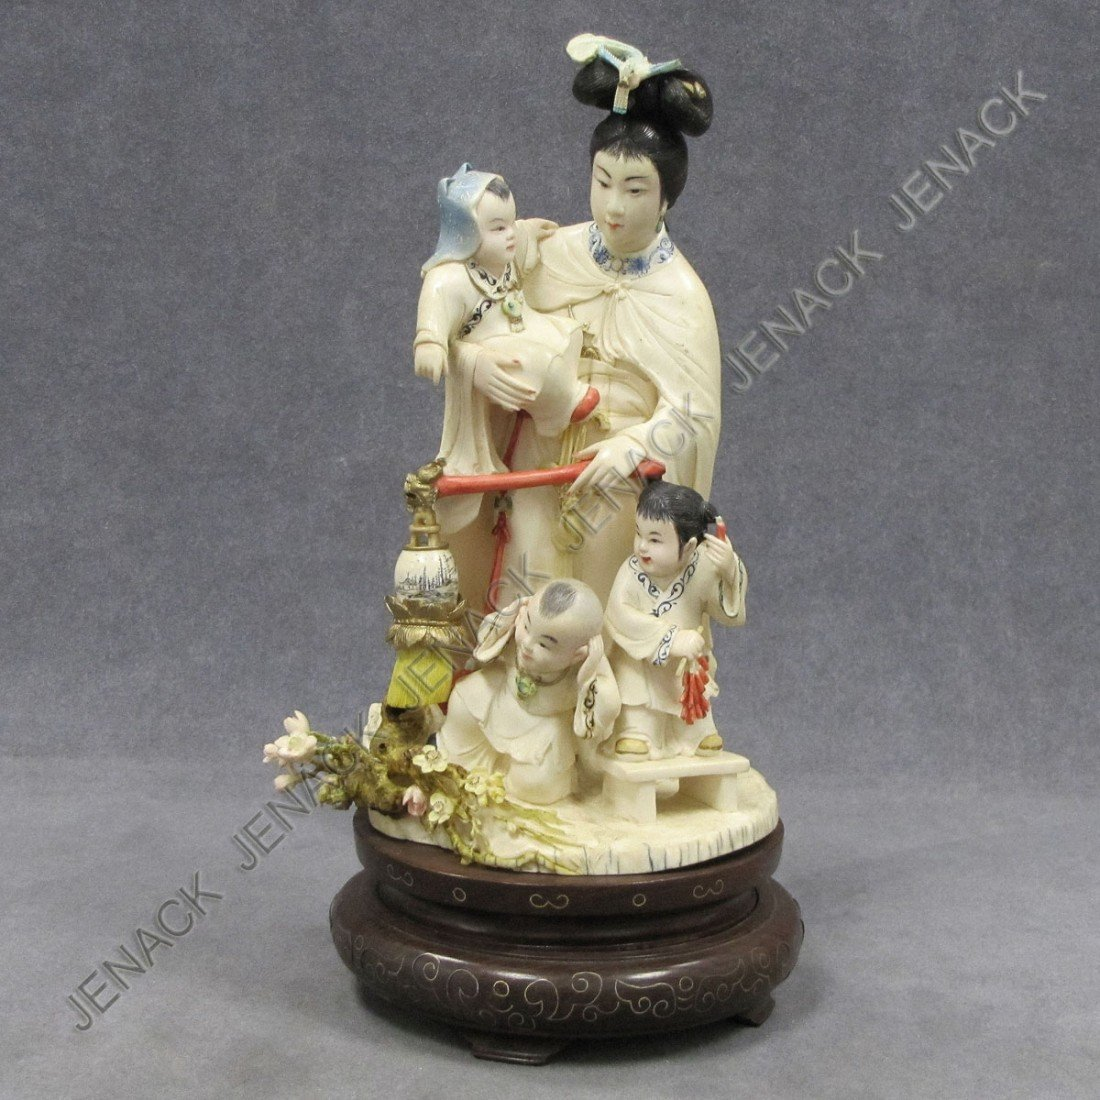 258: CHINESE CARVED/STAINED IVORY FIGURE OF A WOMAN